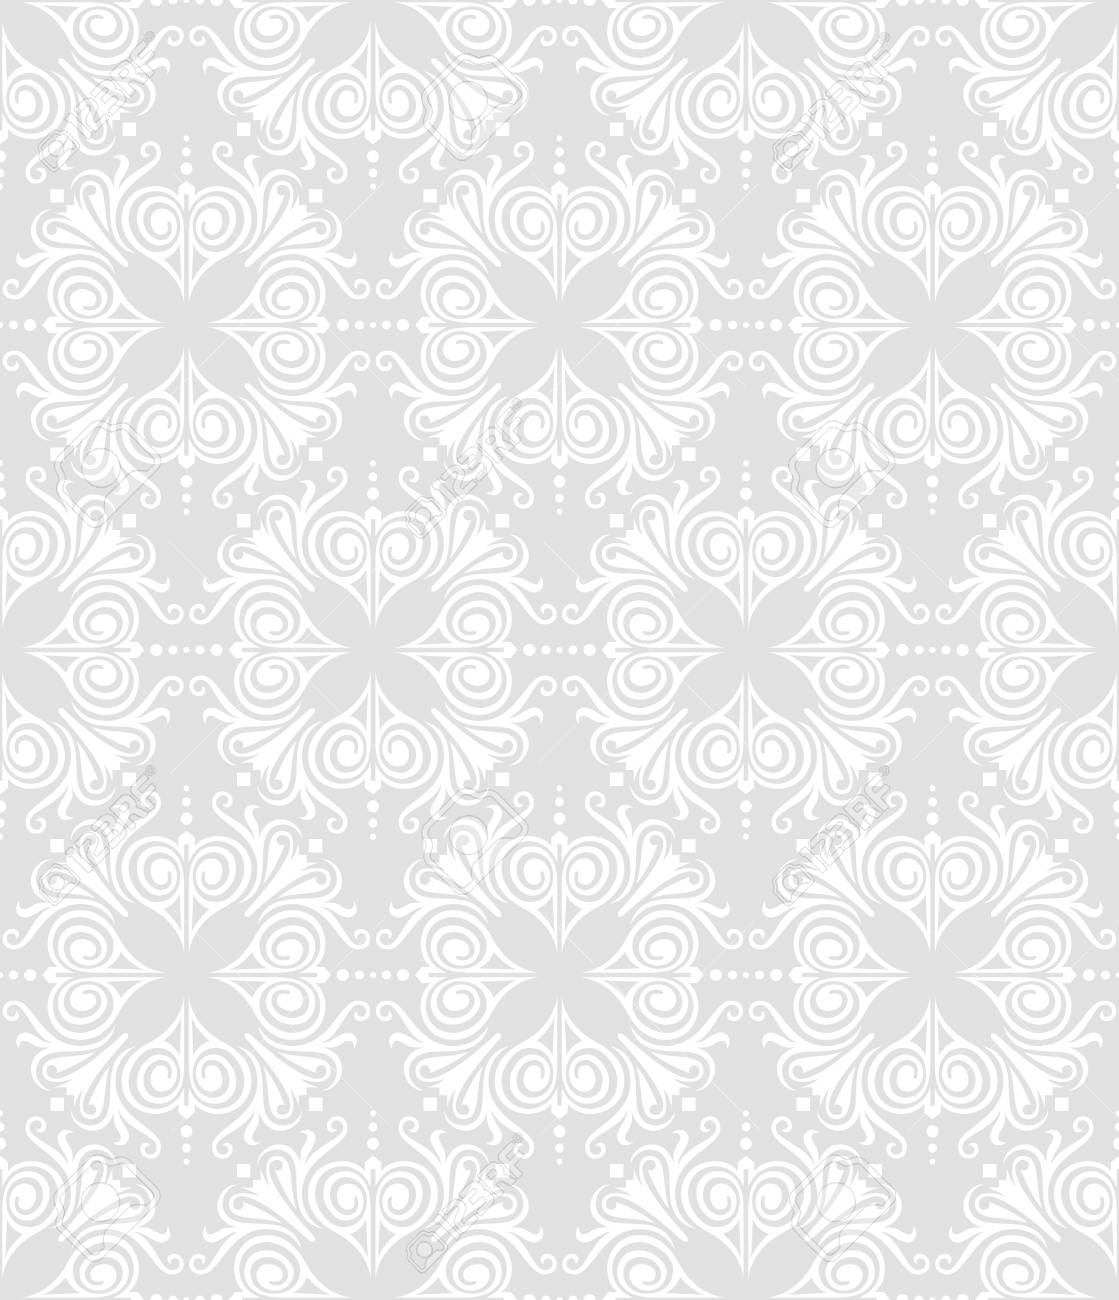 seamless floral damask pattern for wedding invitation or vintage abstract background Stock Vector - 20286791